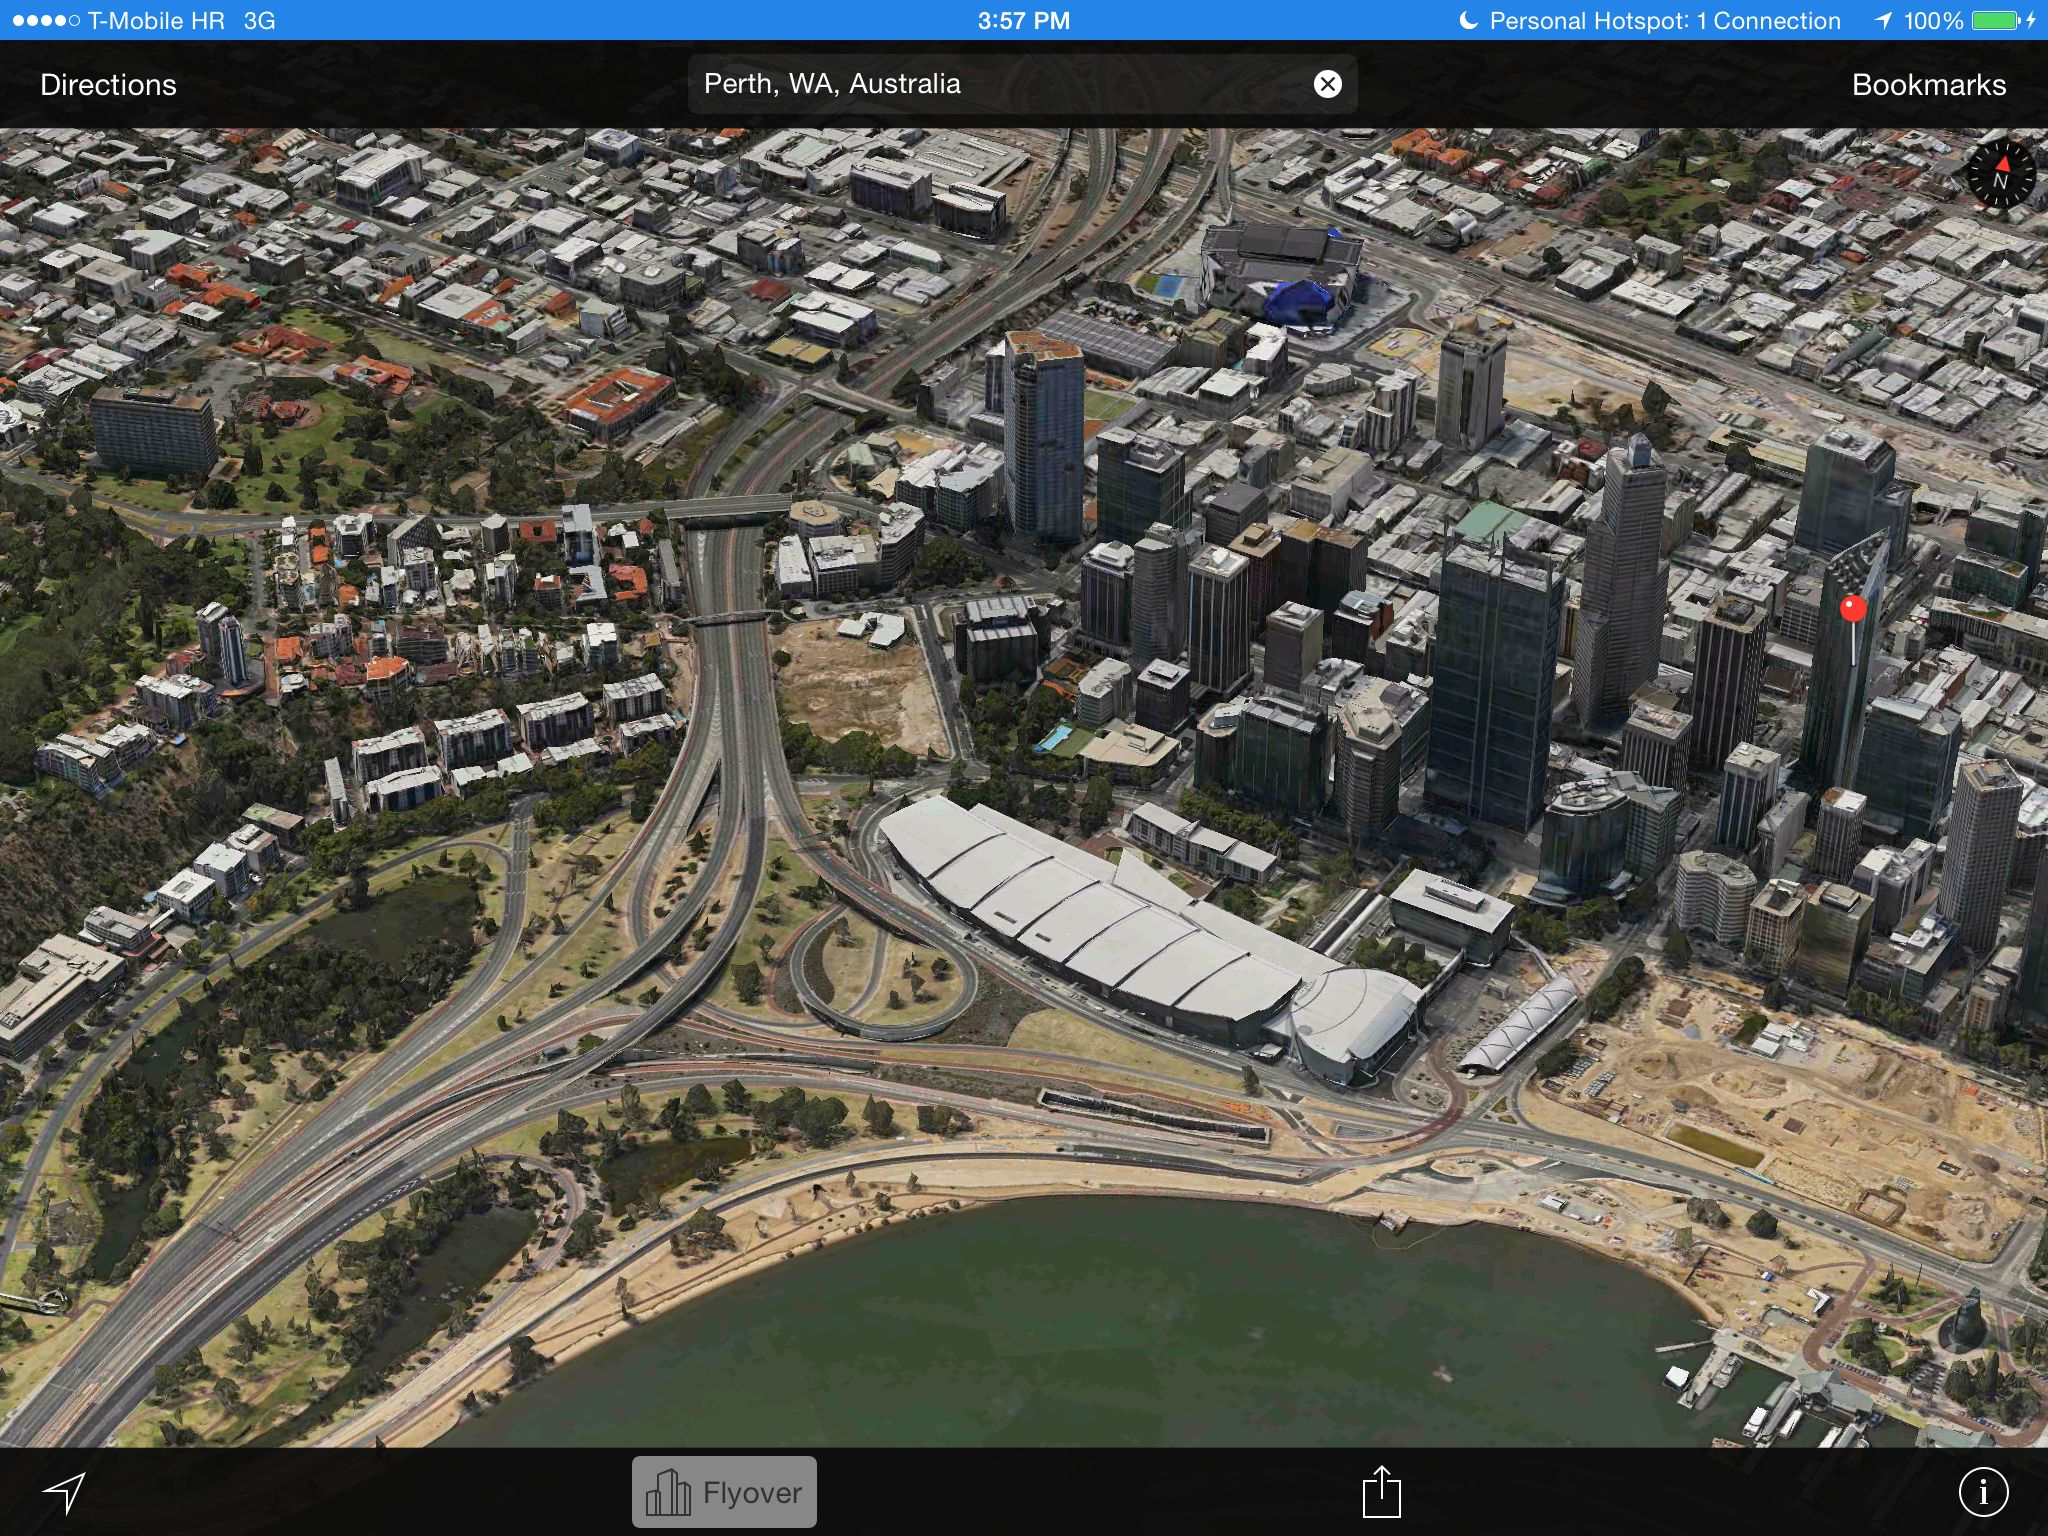 Apple Maps 3D Flyover (Perth, Australia)